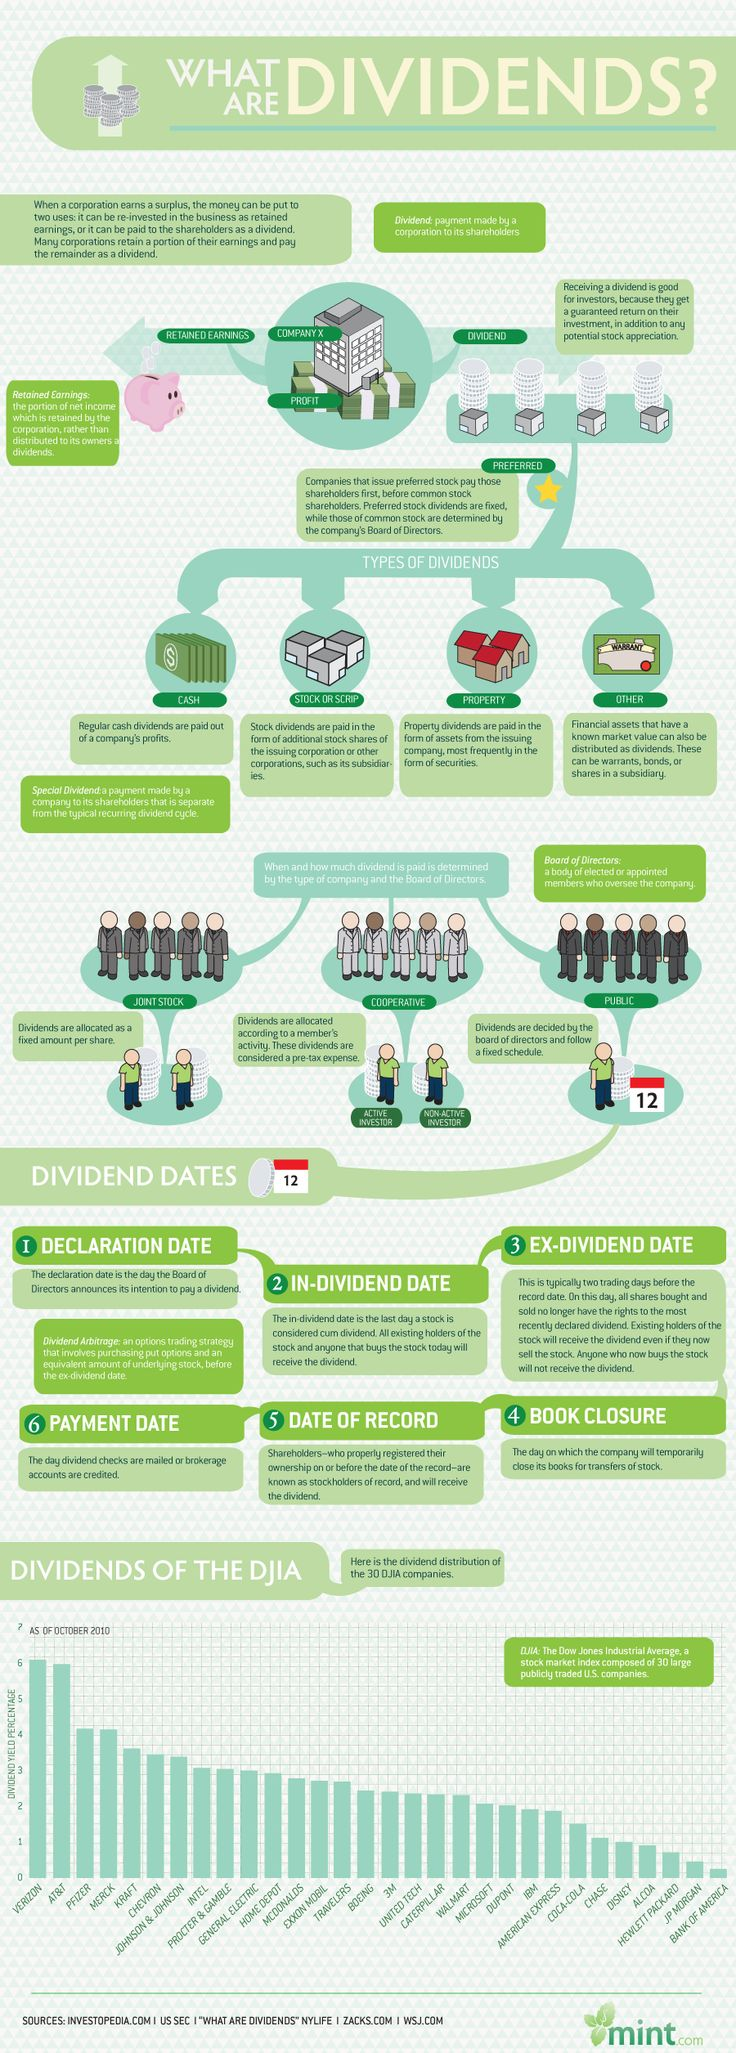 Learning money and bank terms can be confusing. This infographic was designed to answer the question: What are dividends? The graph explains that when